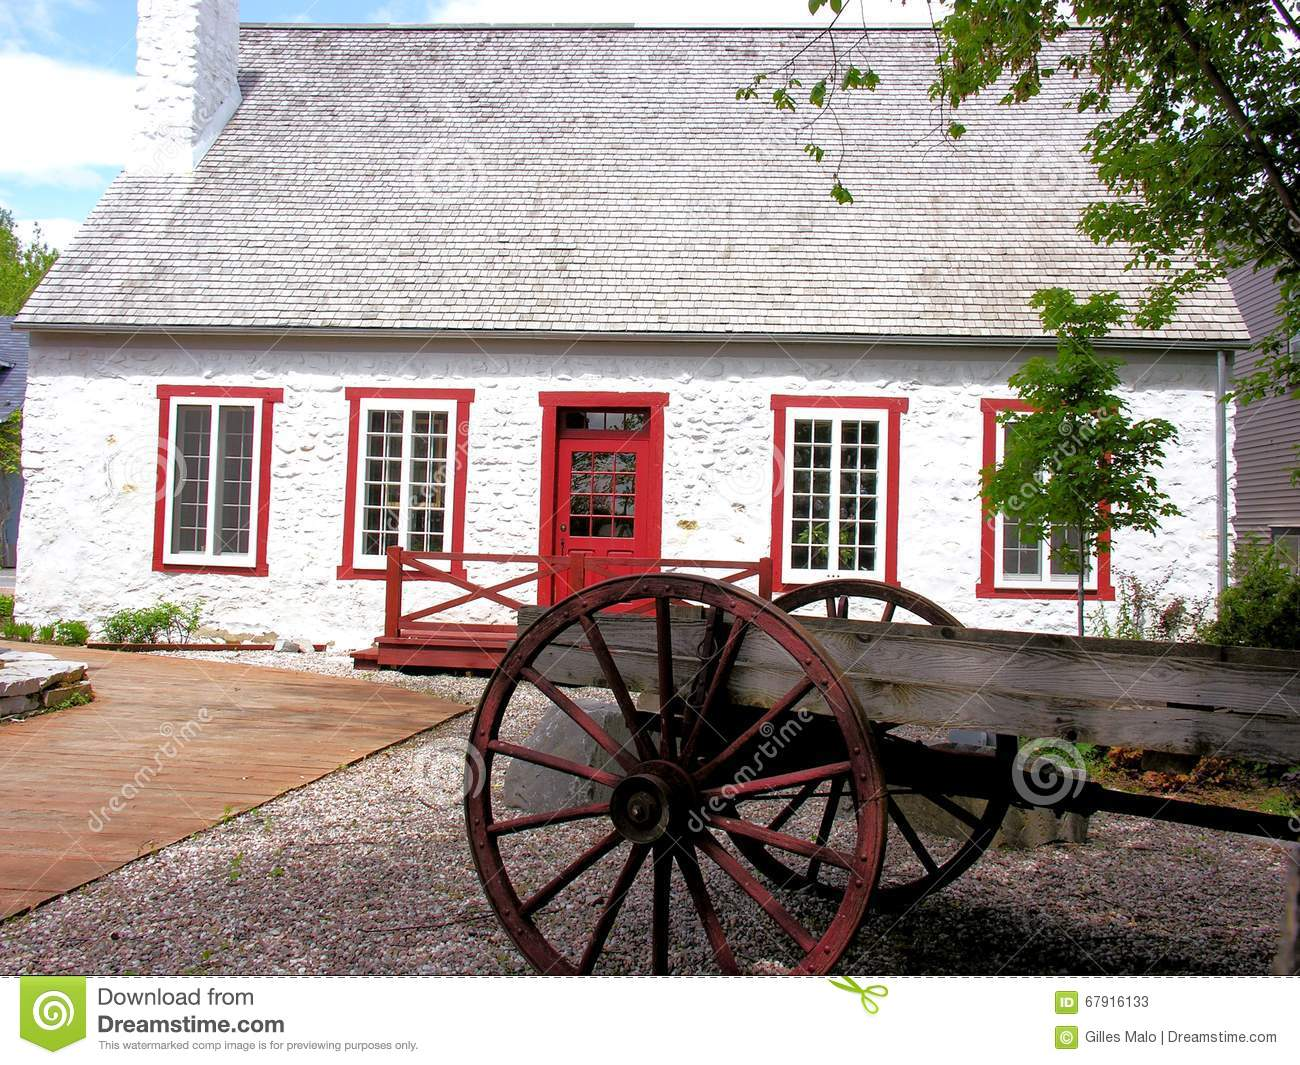 Very old white house in small town canada